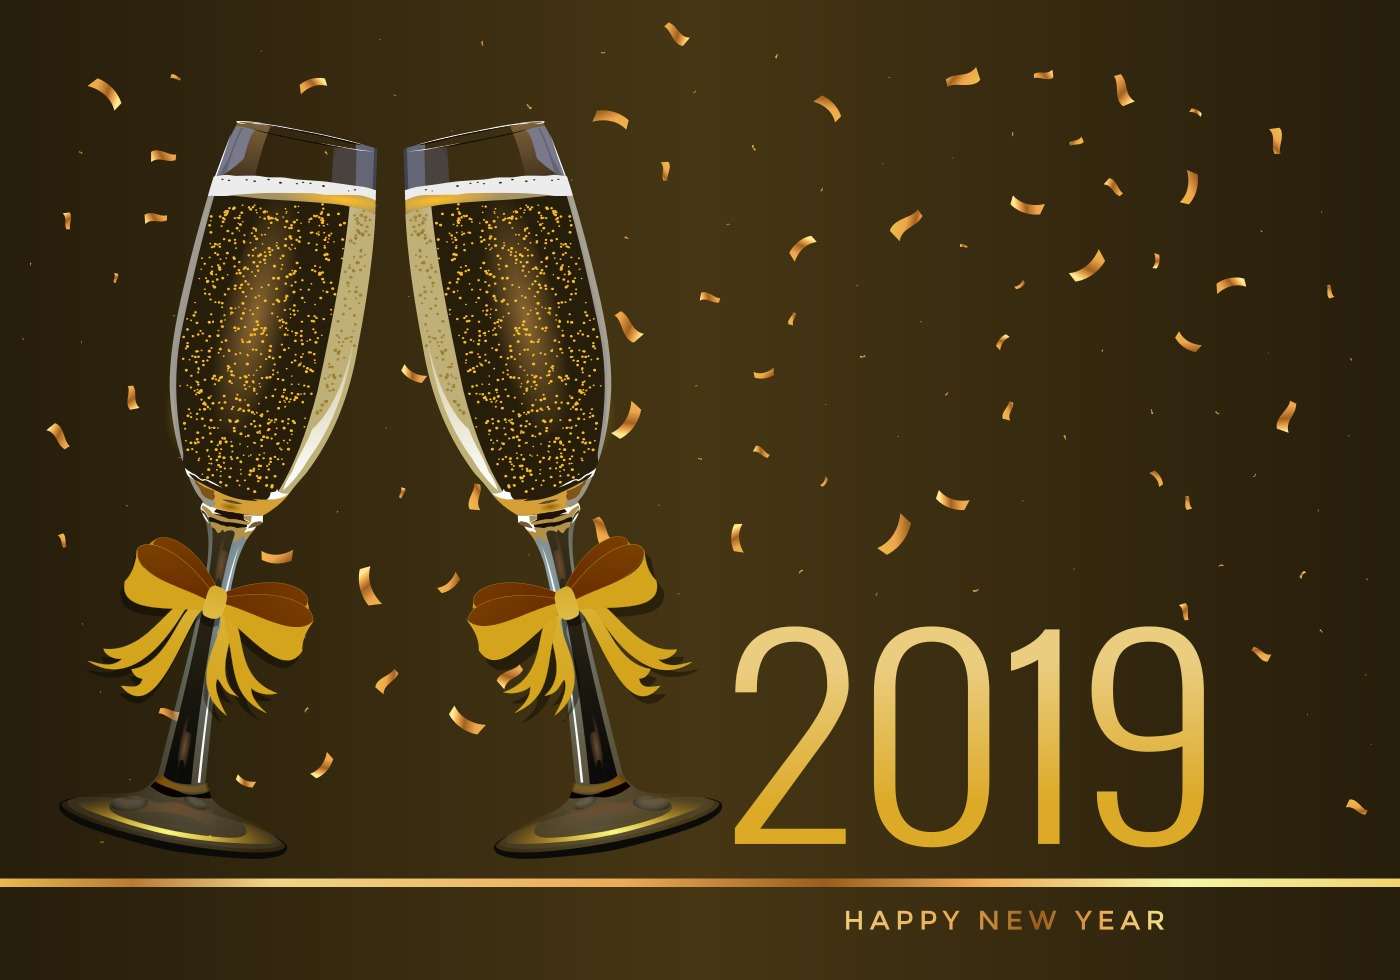 vector-new-year-2019-illustration.jpg